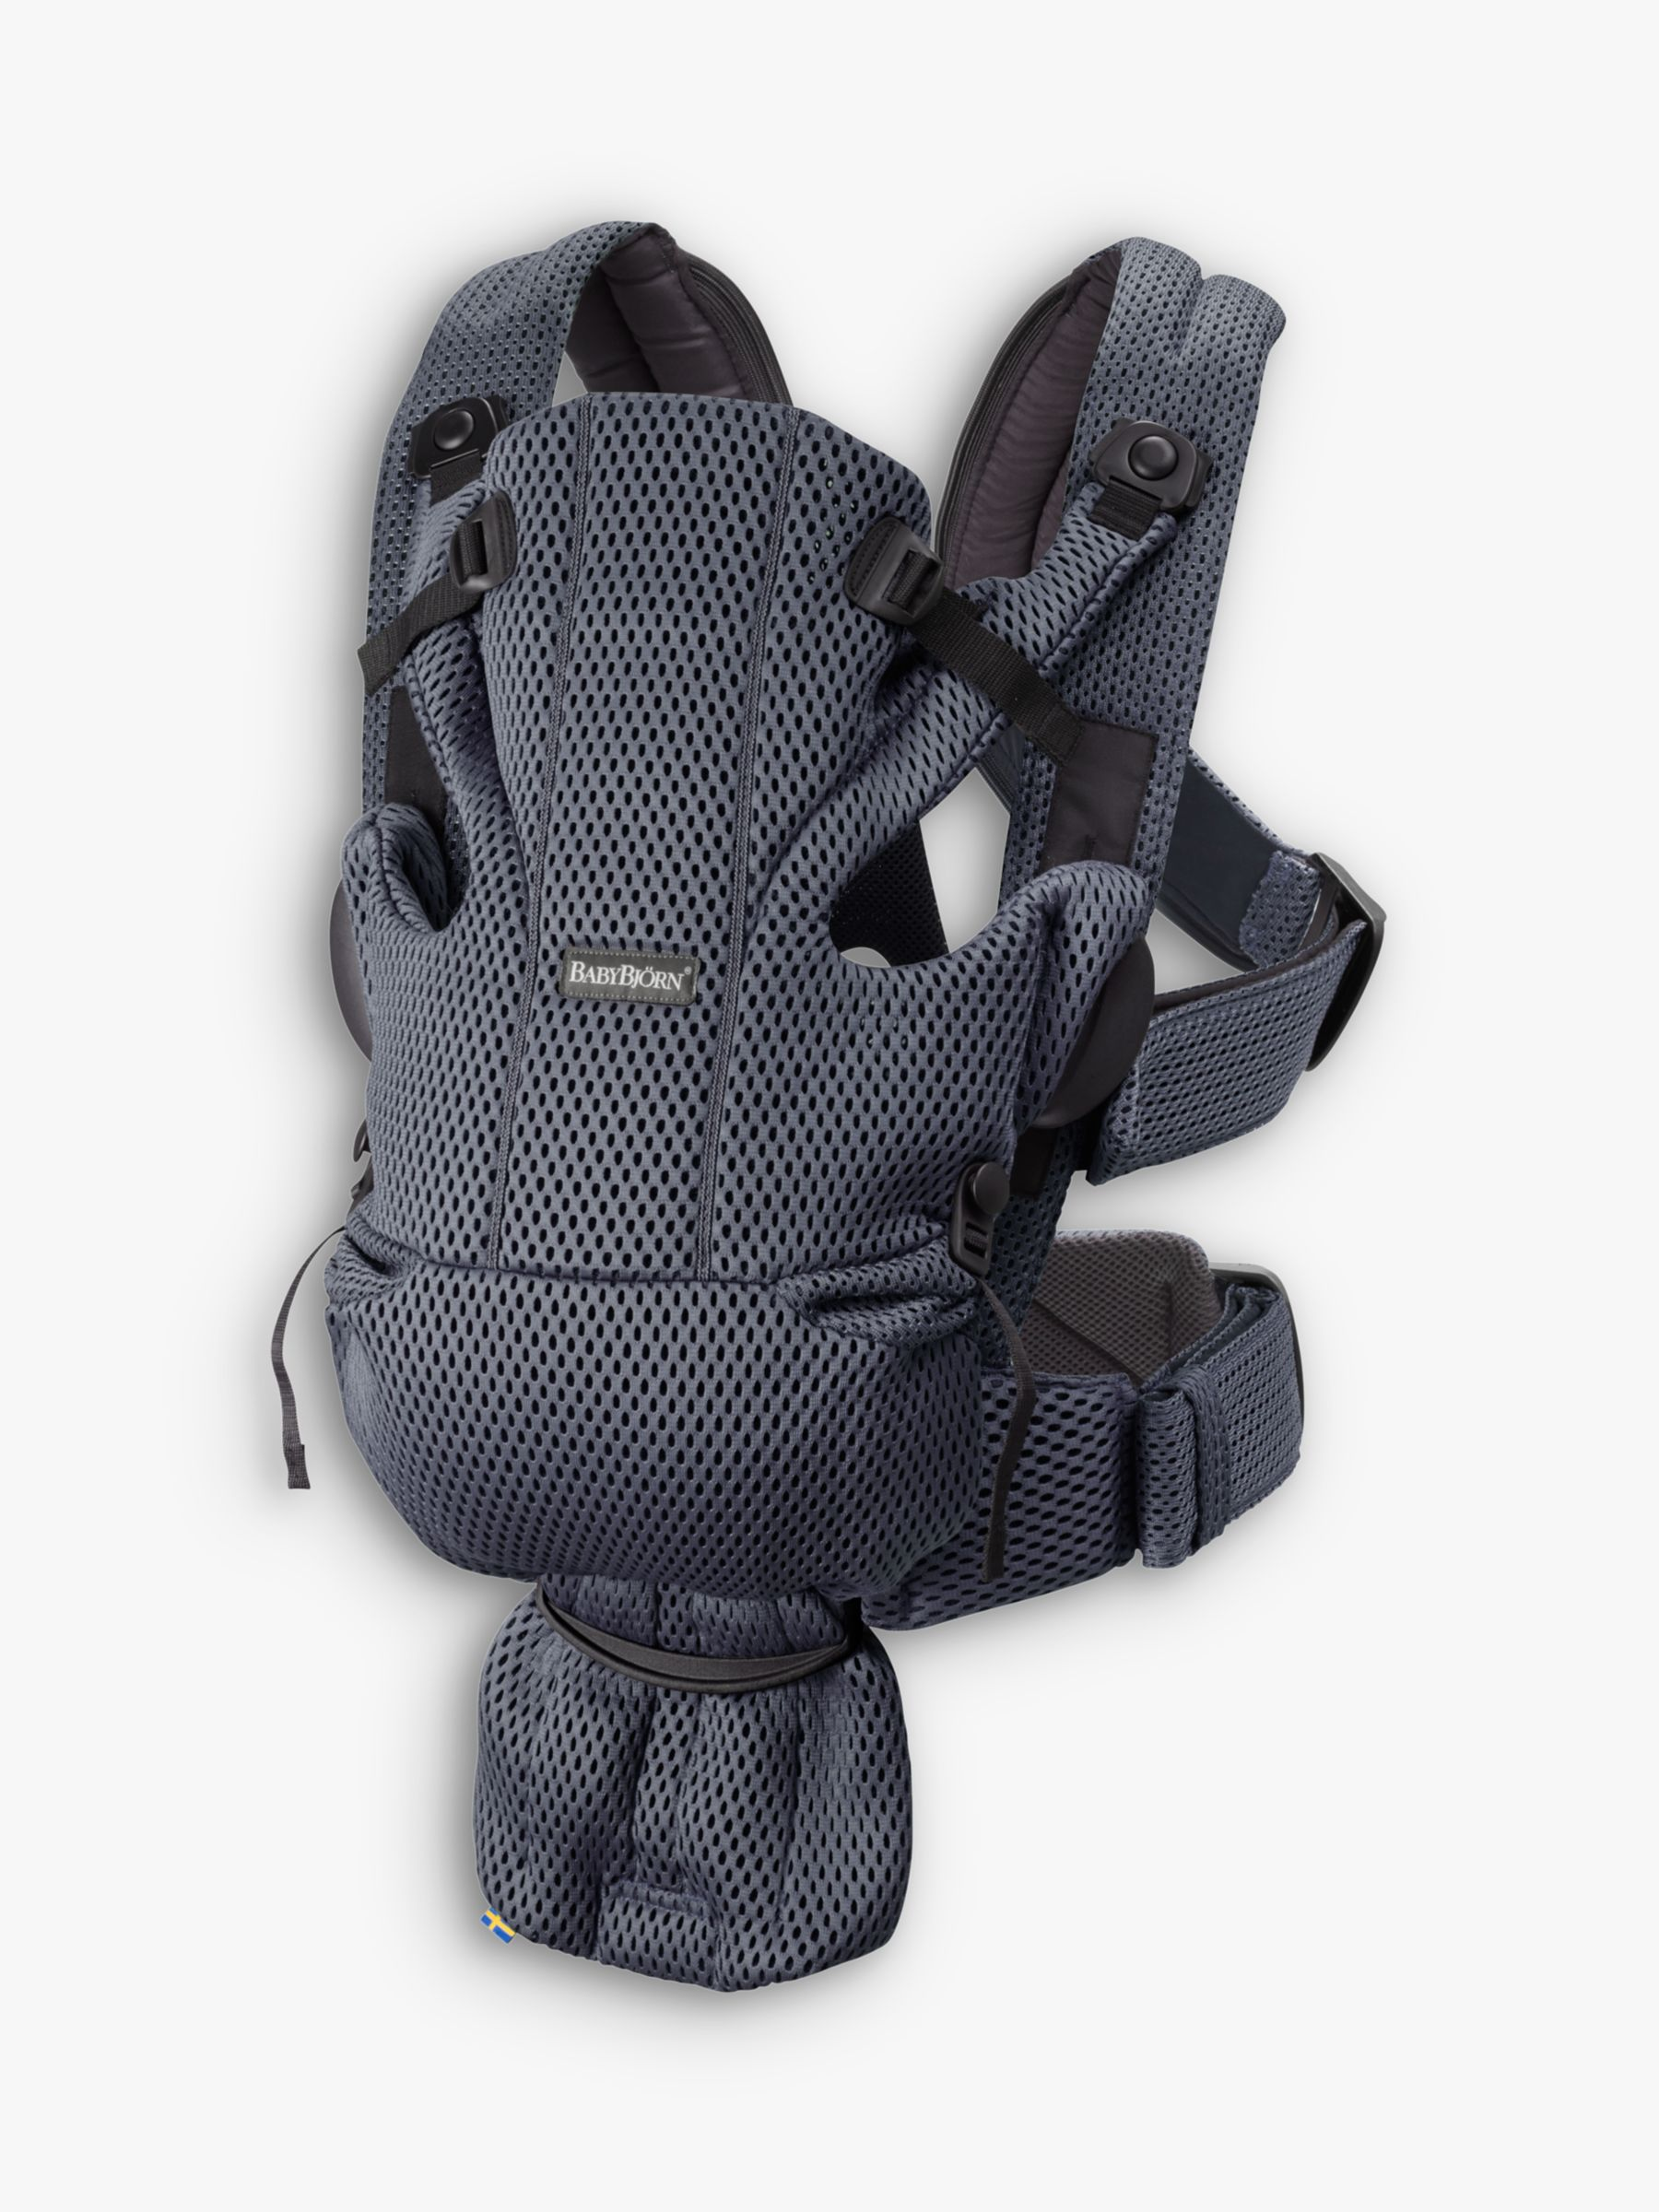 BabyBjorn BabyBjörn Move with 3D Mesh Baby Carrier, Anthracite